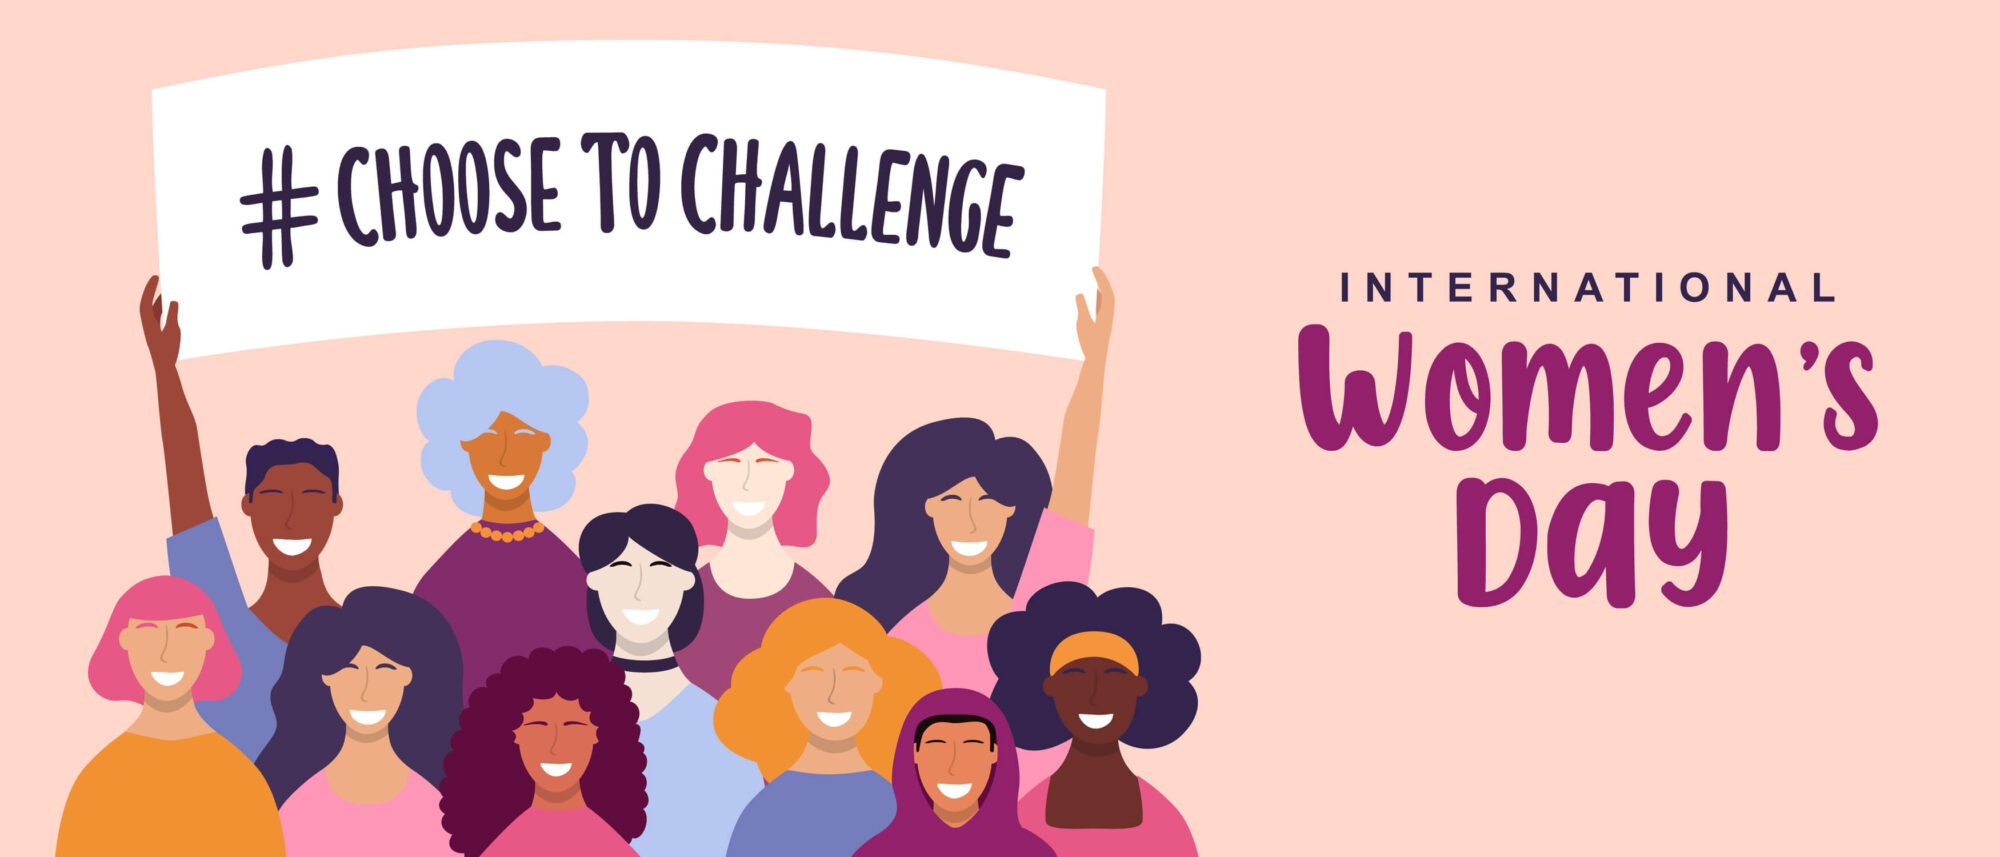 Castle's international women's day 2021 graphic, drawing of women holding #choose to challenge banner